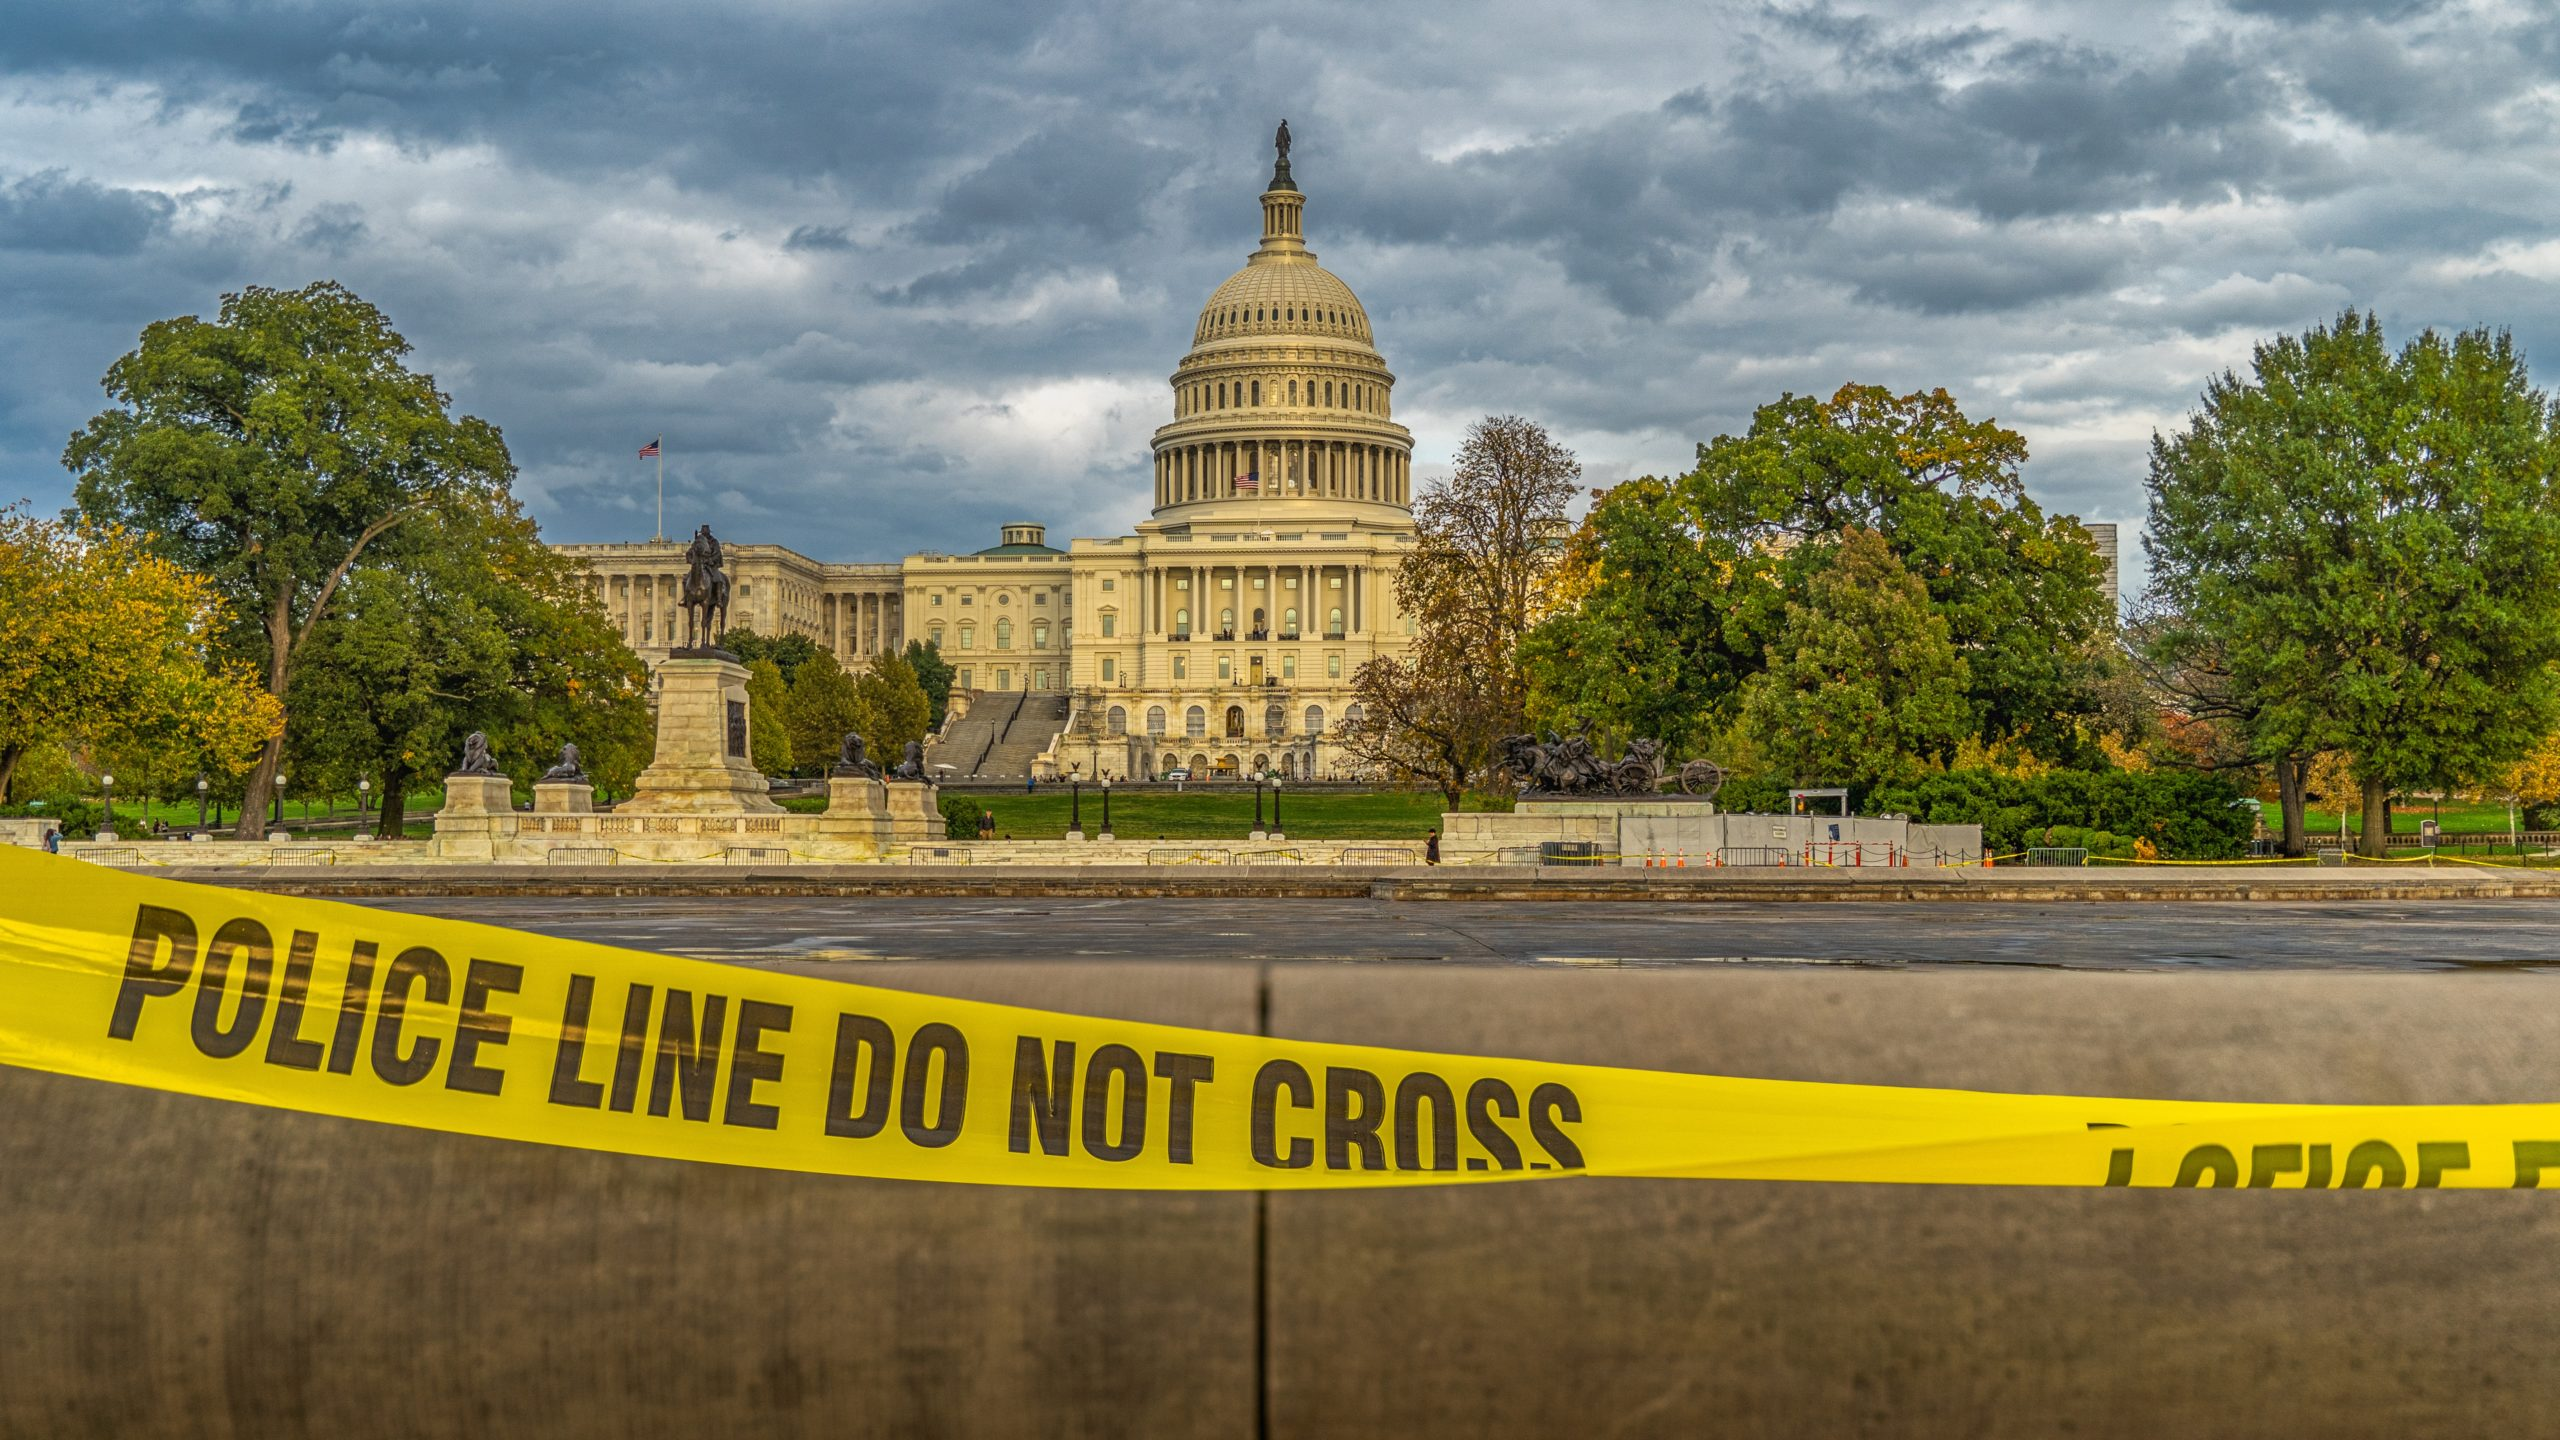 U.S. capitol building with police tape